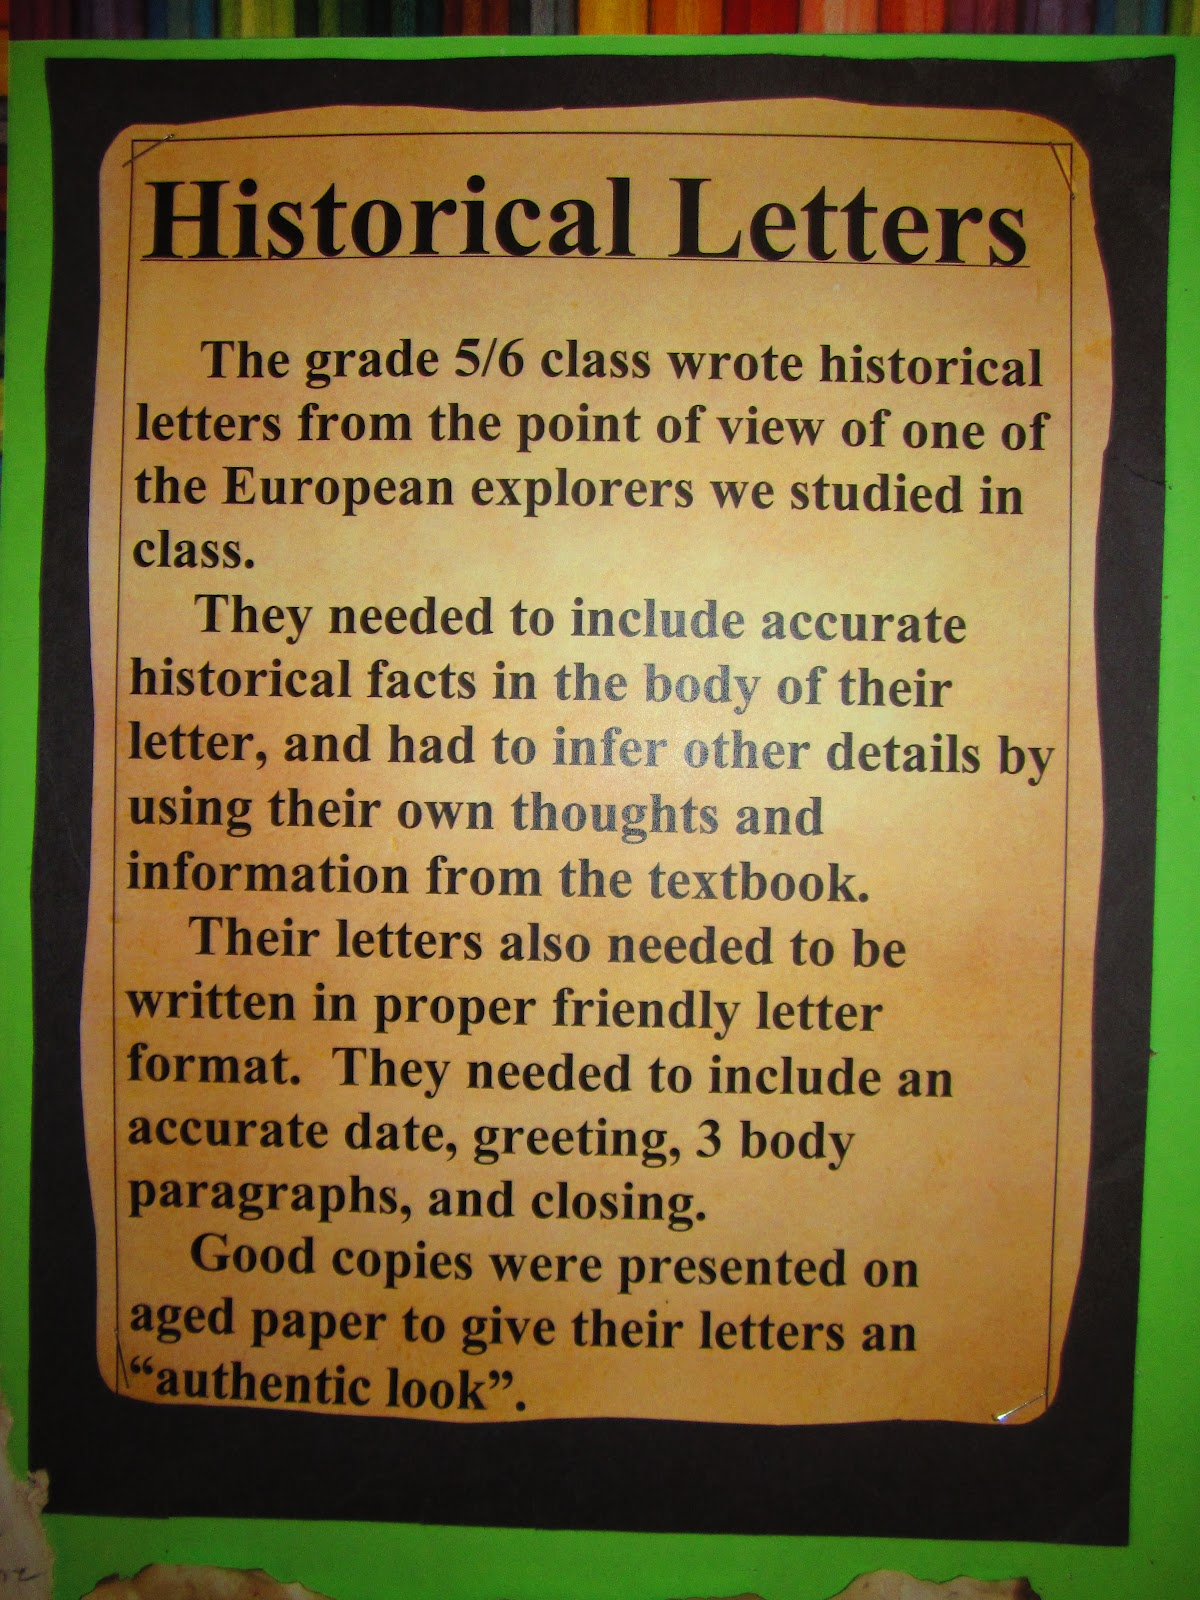 10 Important Historical Letters Nearly Lost To Time